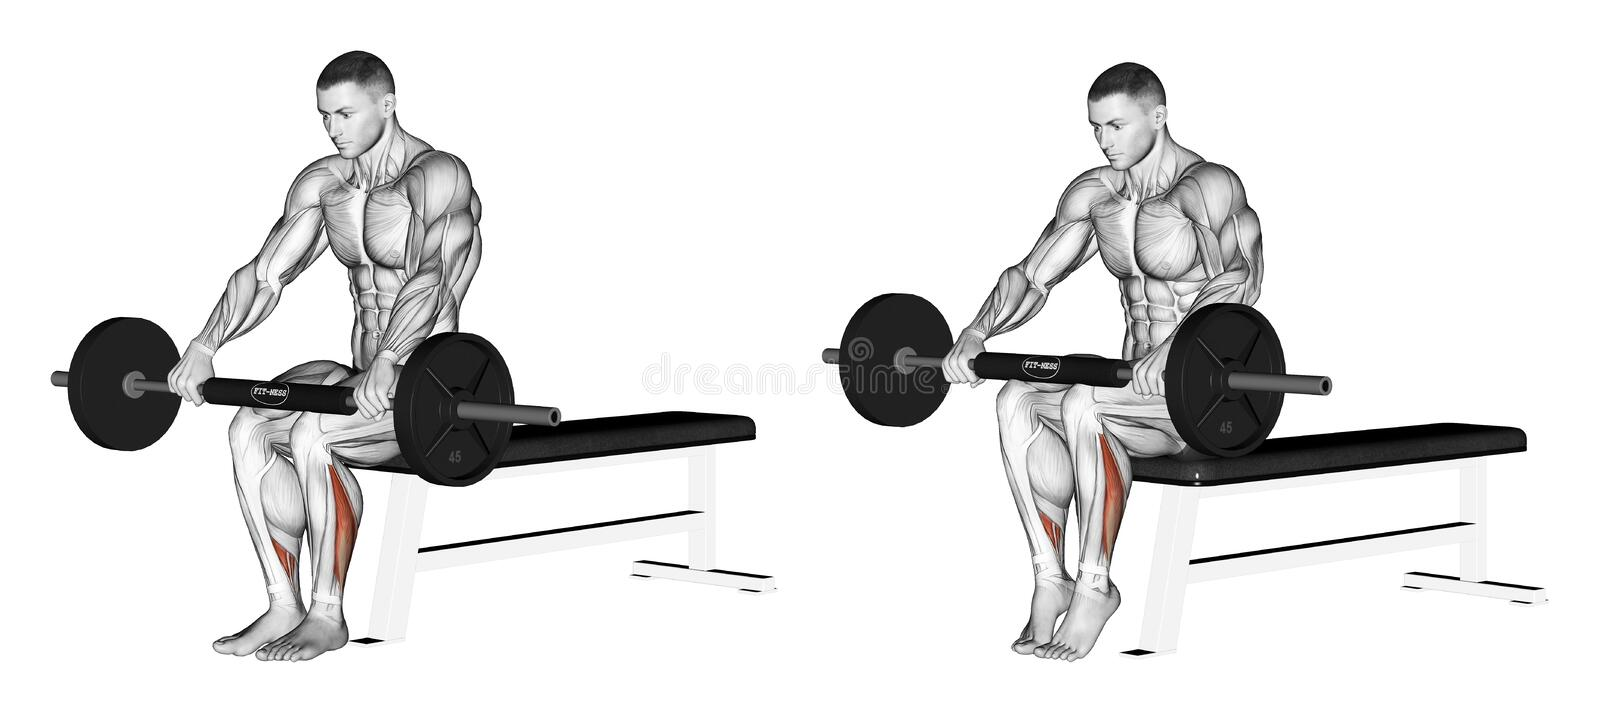 Exercising. Extension of the lower leg, sitting on. Extension of the lower leg, sitting on his knees with the bar. Exercising for bodybuilding Target muscles are vector illustration